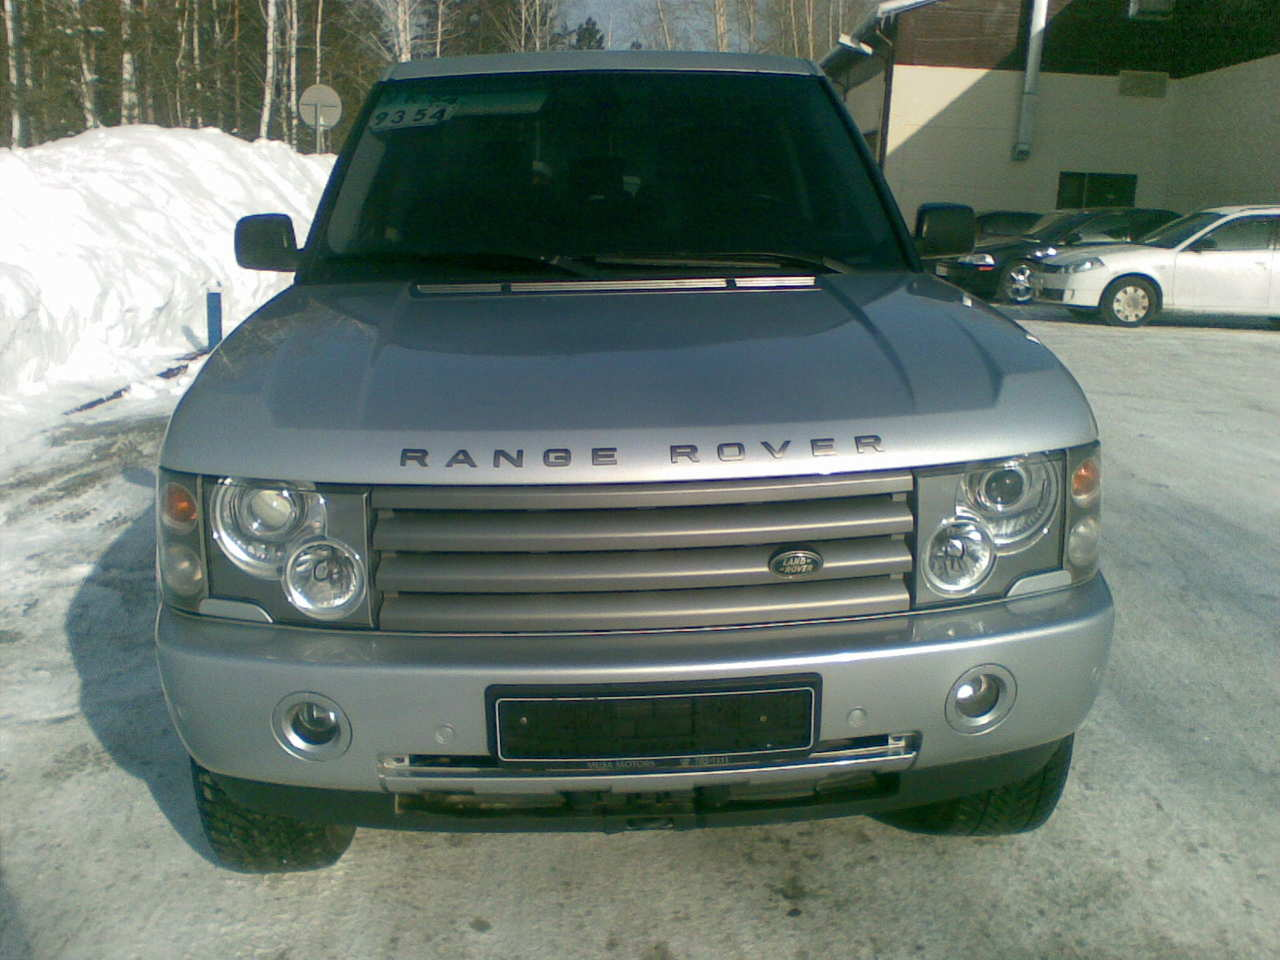 2002 land rover range rover for sale 4400cc gasoline automatic for sale. Black Bedroom Furniture Sets. Home Design Ideas